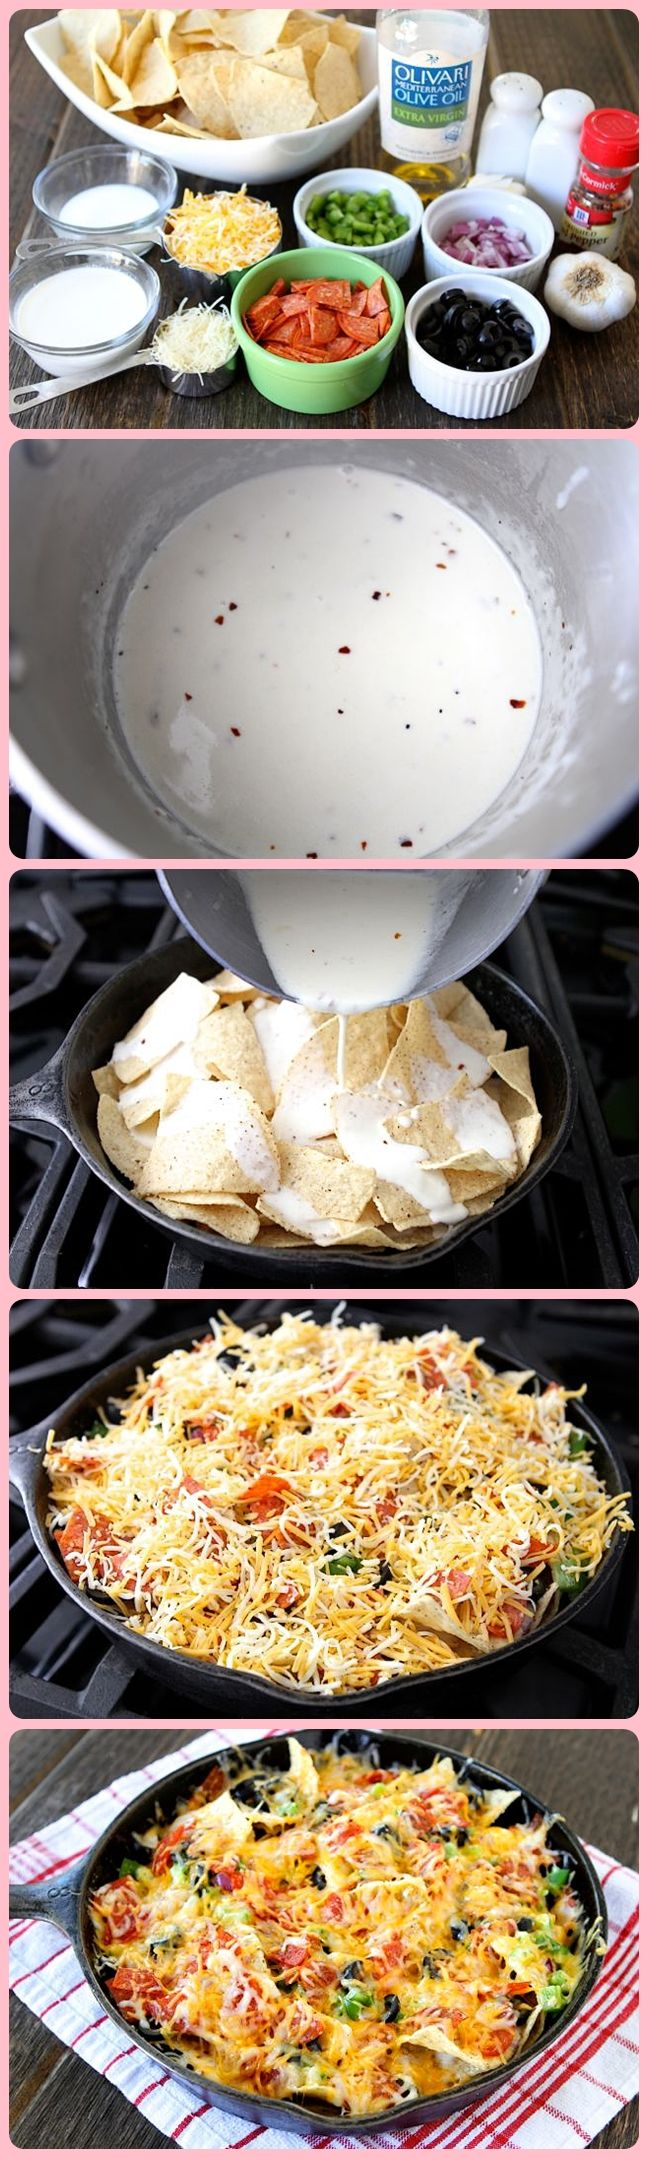 Pizza Nachos - pin is to pictures only, recipe is at Tasty Kitchen